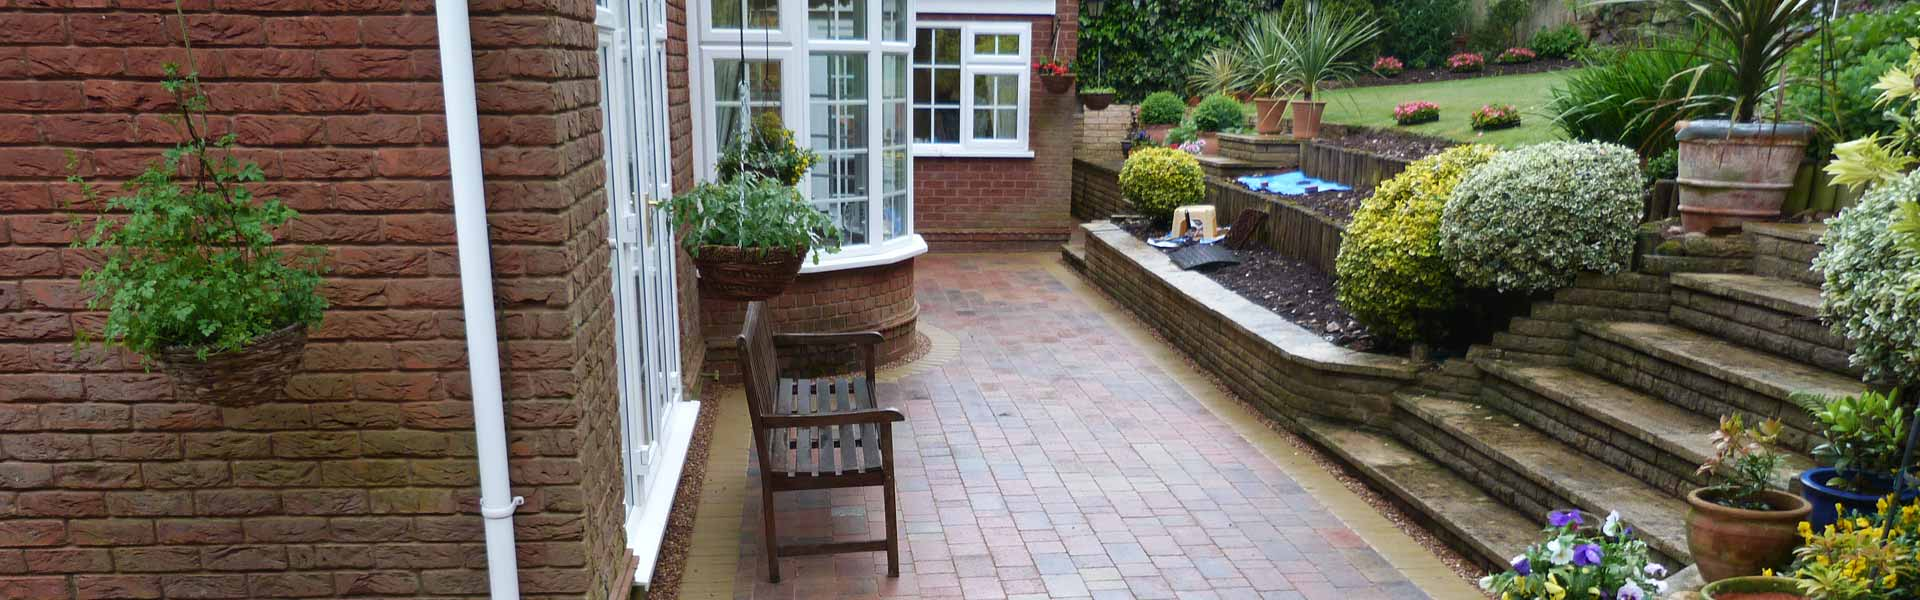 Patios and Paving Installers Coventry